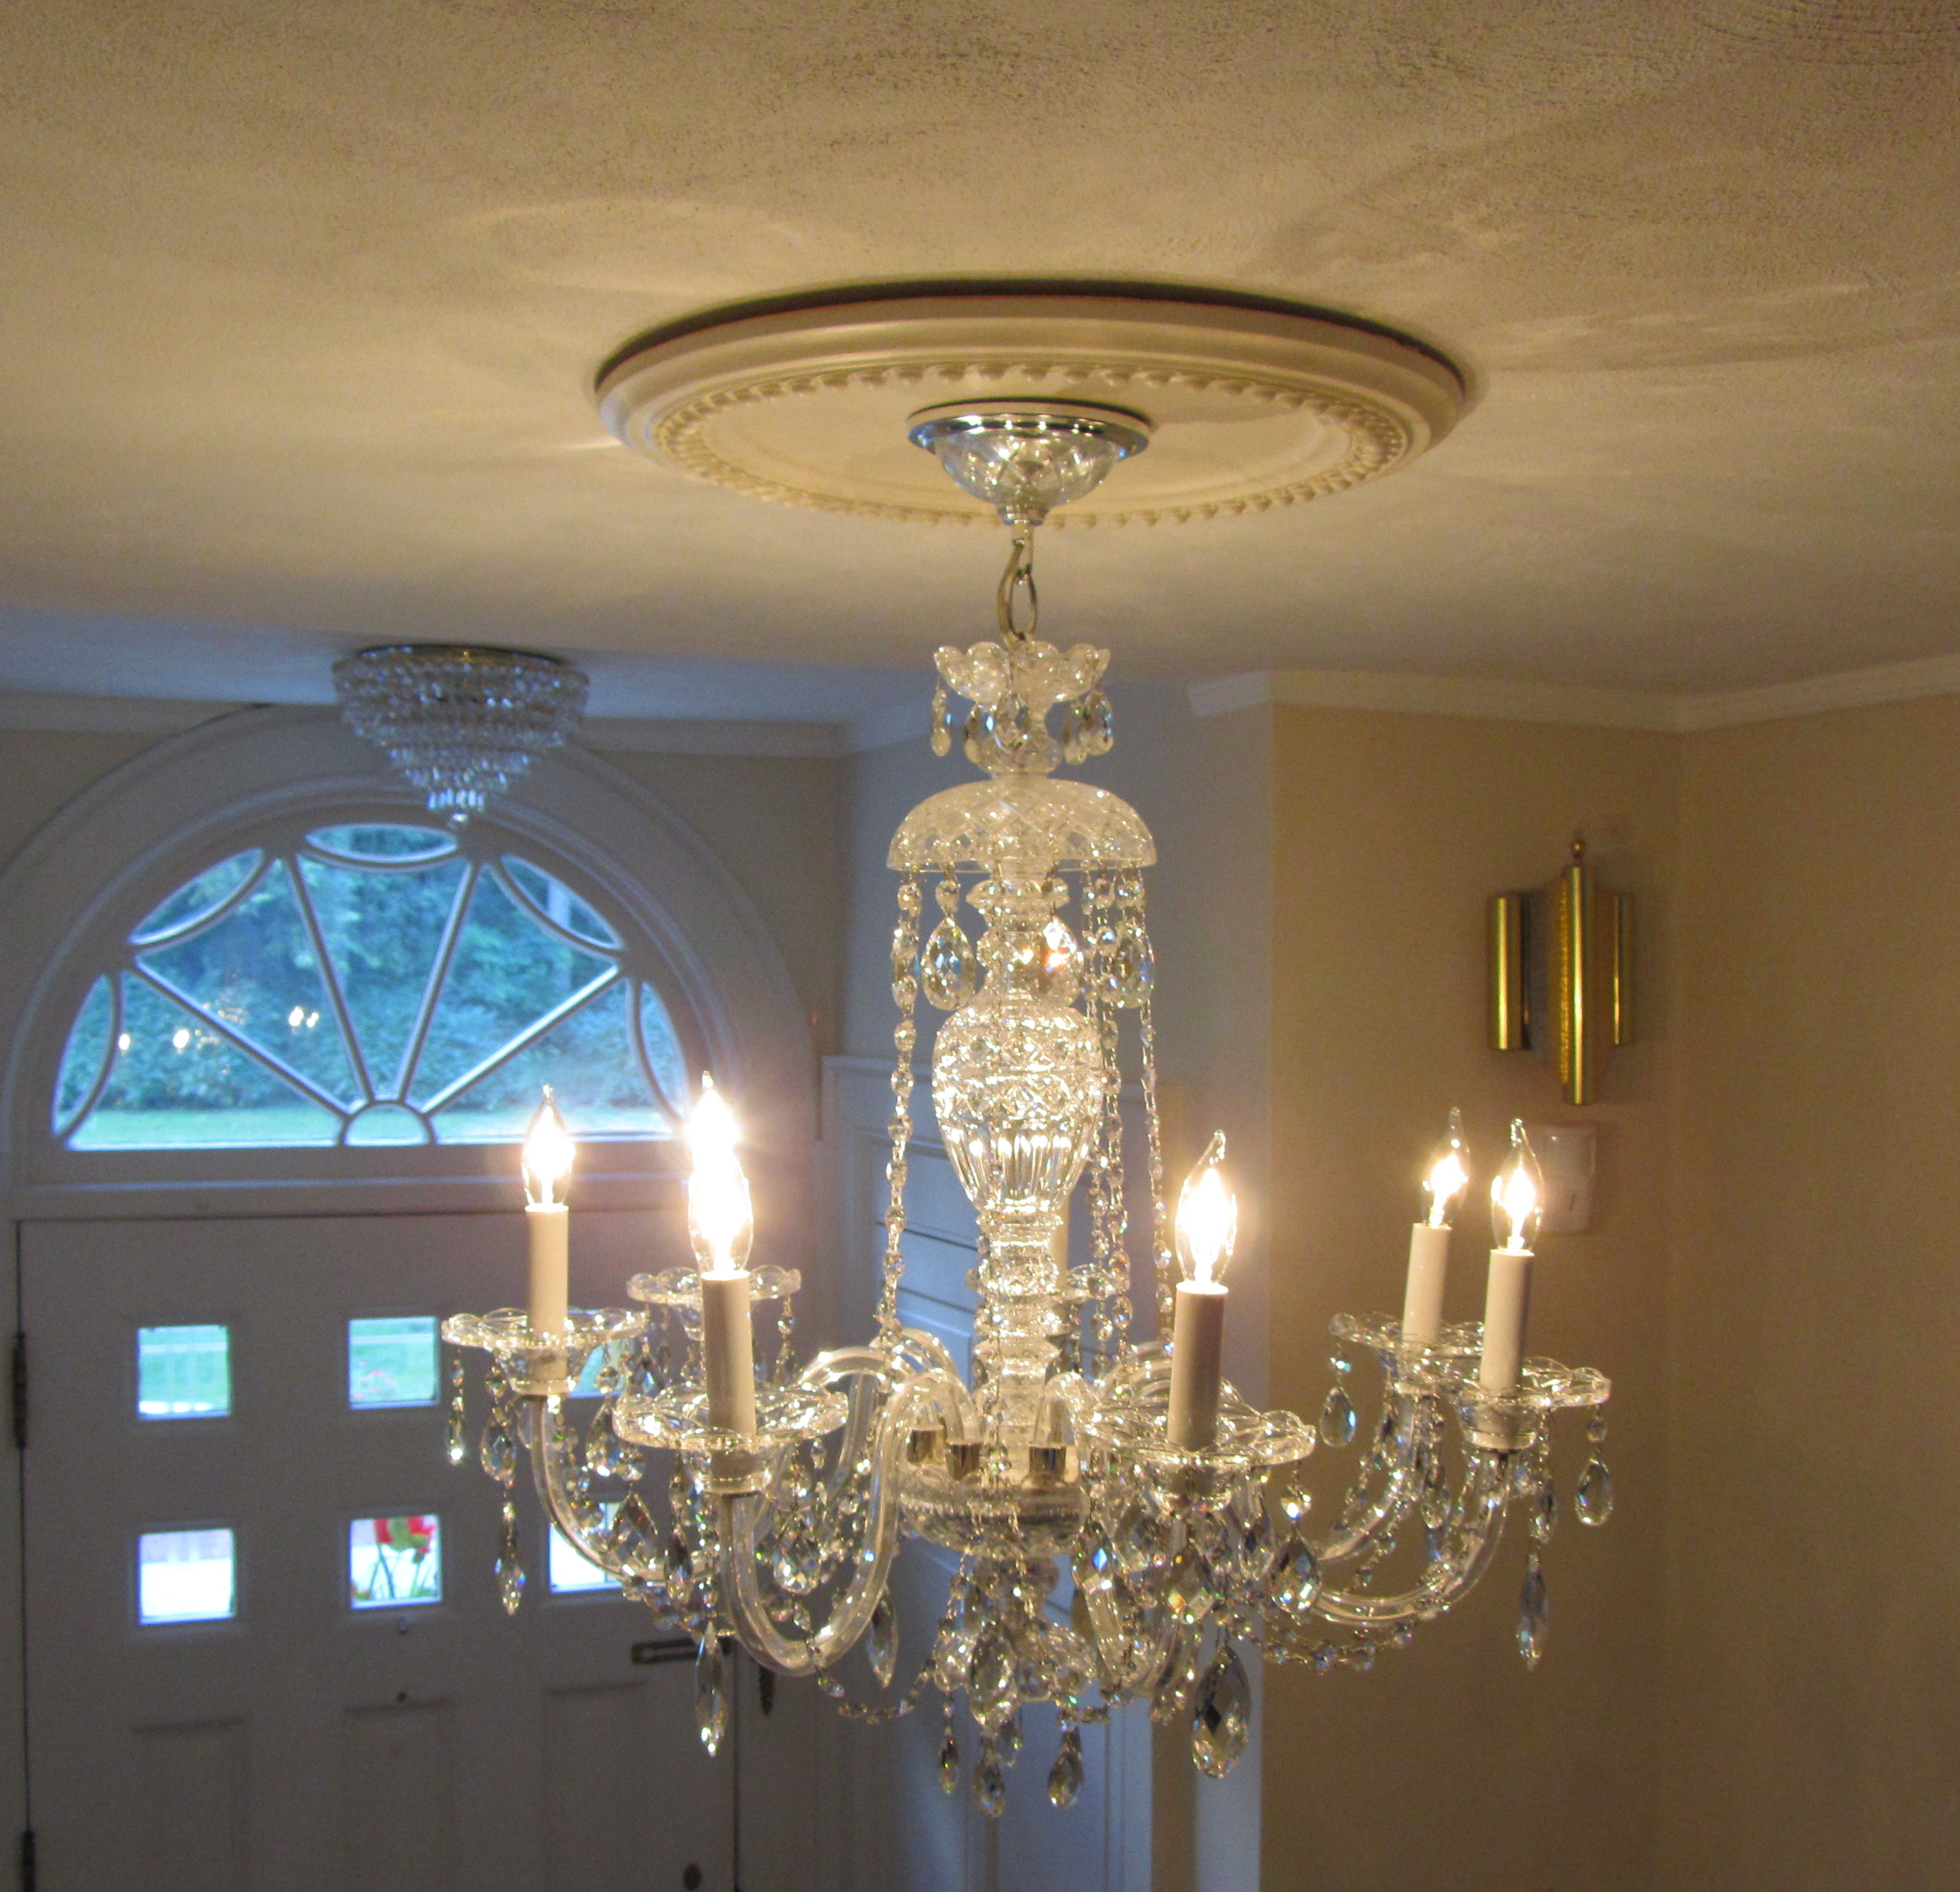 If There Is A Crystal Stem At The Center Of Your Chandelier Like This One Then Spray Bit Windex On Rag And Wipe Exposed Part